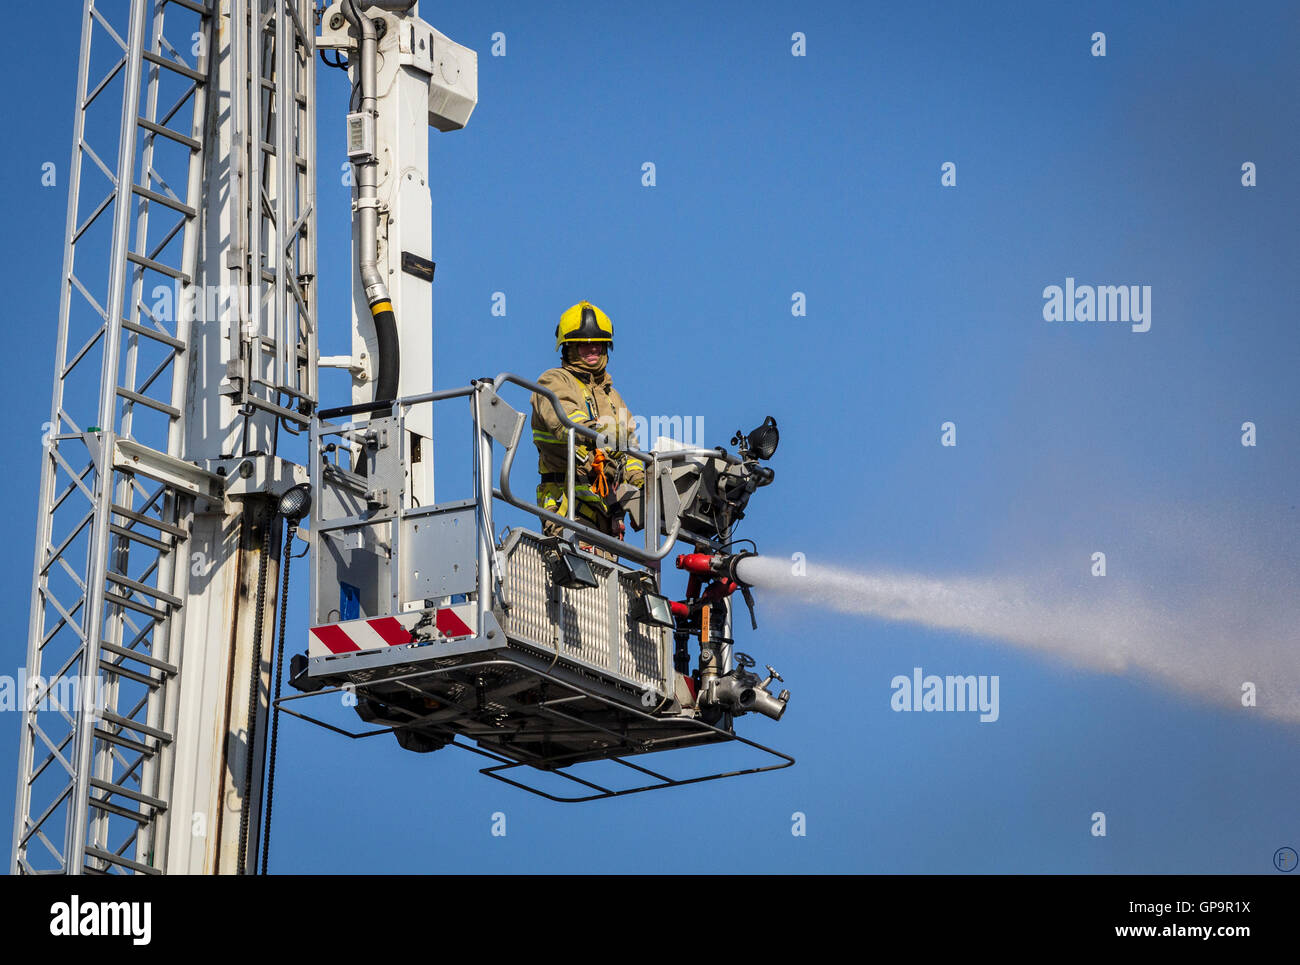 East Sussex Fire & Rescue Service Aerial Ladder Platform in action. - Stock Image